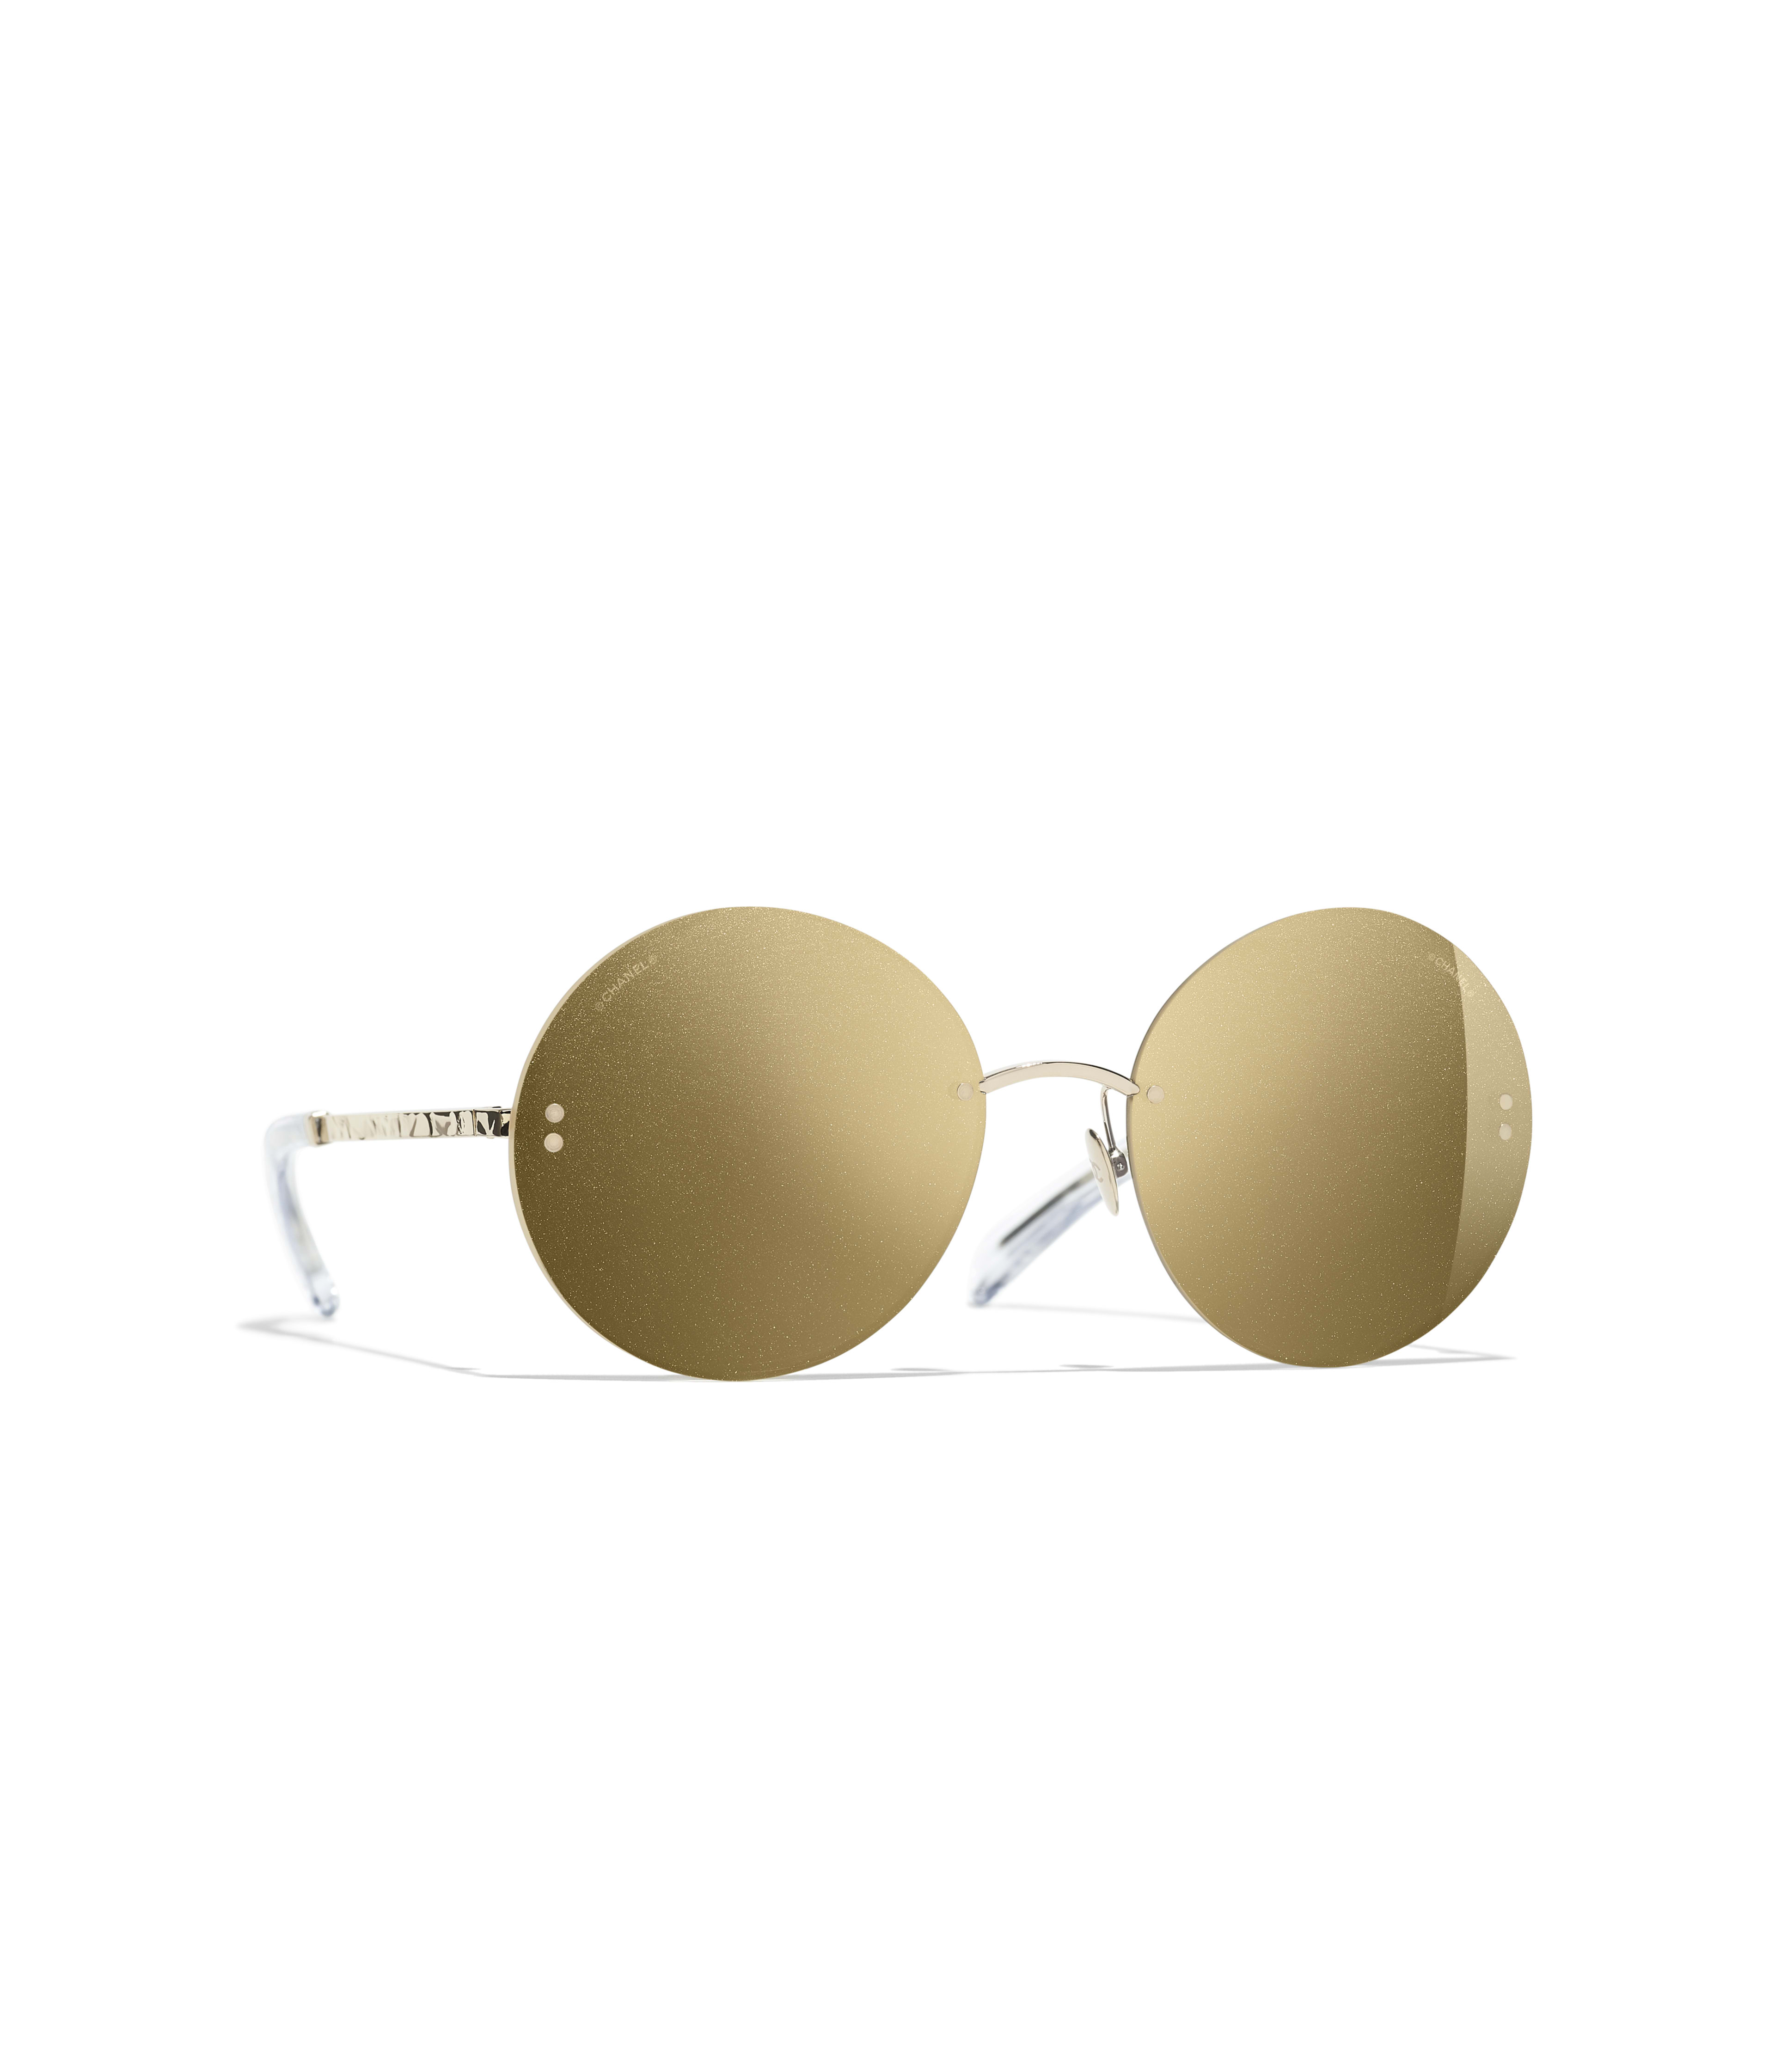 784204645d Sunglasses - Eyewear